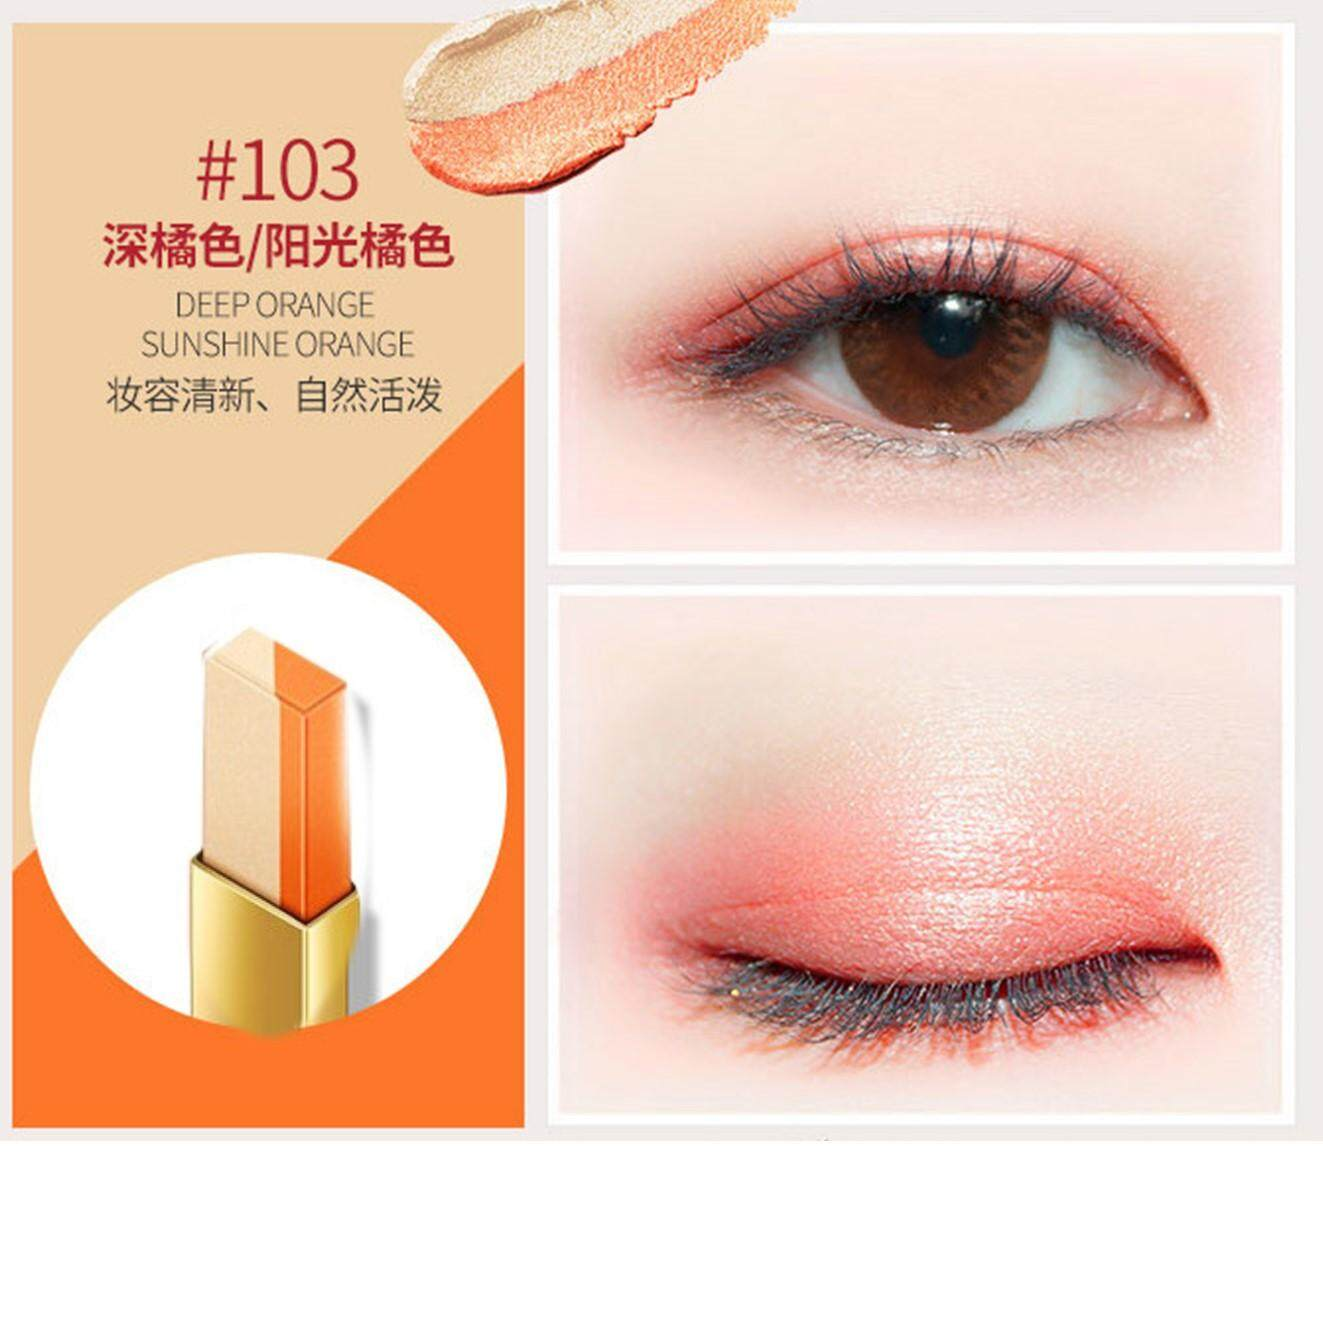 Malaysia Best Buy Bioaqua 12 11 18 Natural Colour 01 Box Orange Bb Cream Air Cushion 100 Authentic Double Eye Shadow Glitter Makeup Beauty